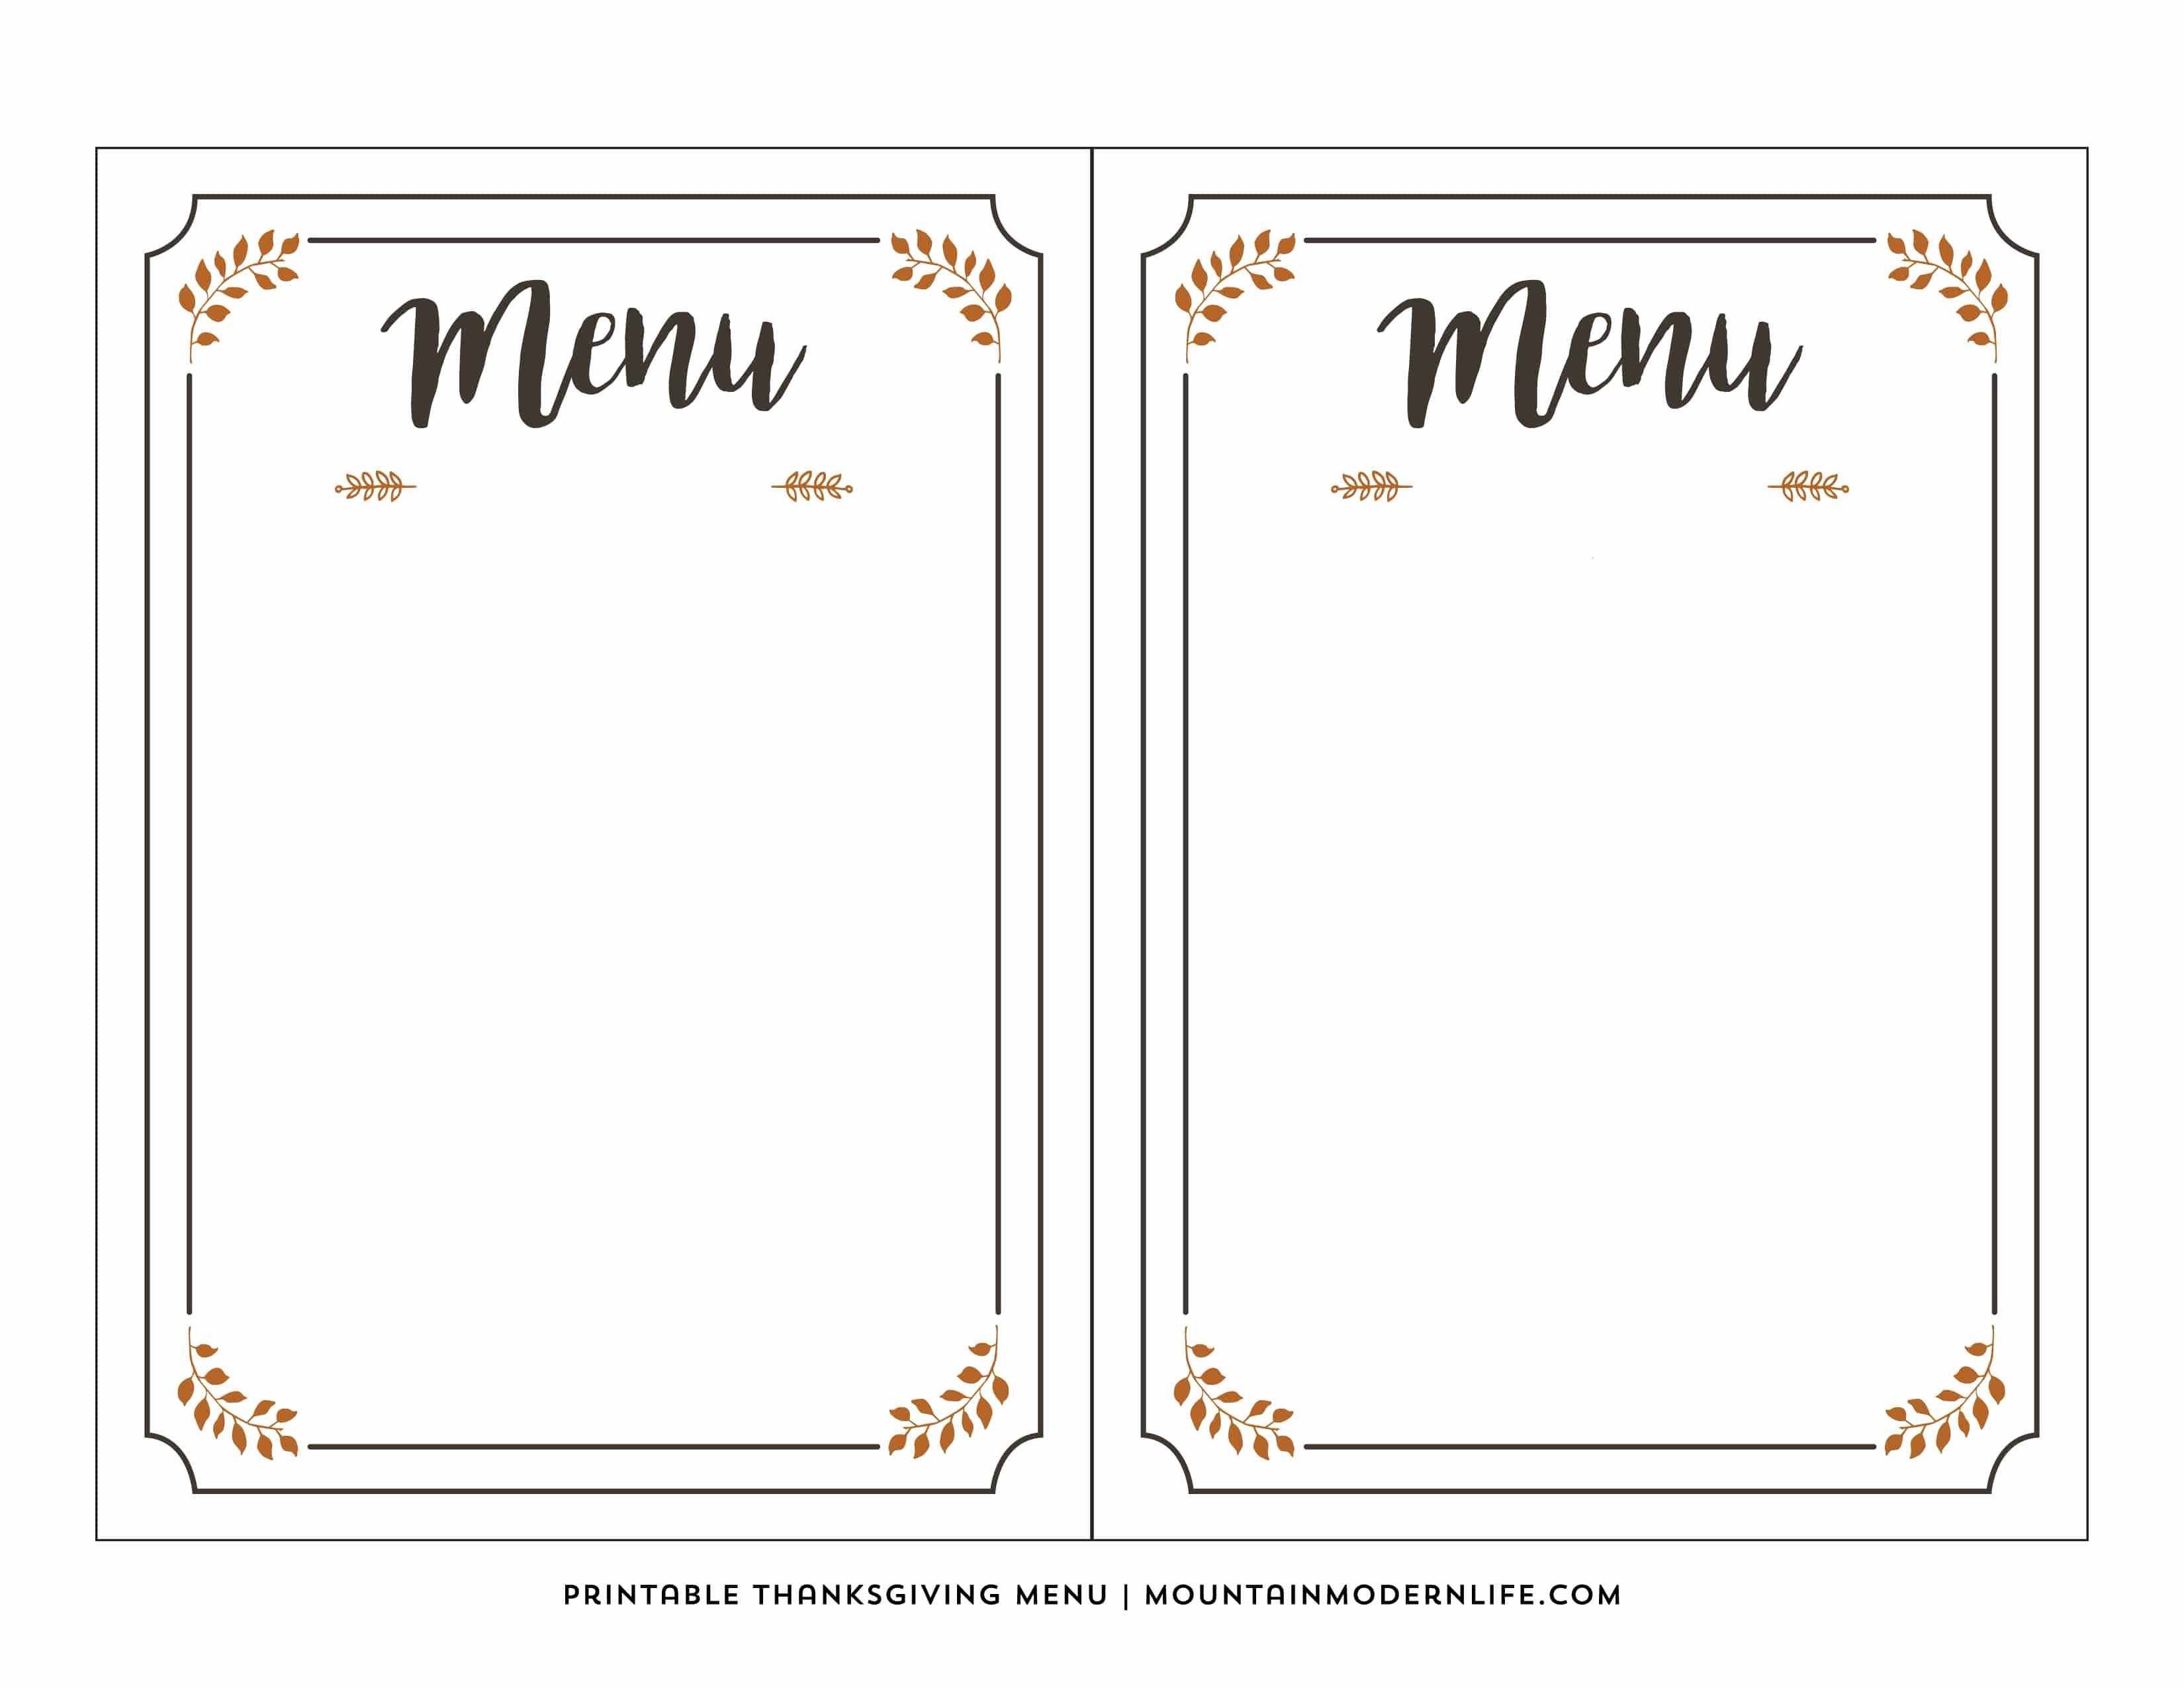 Blank Restaurant Menu Template Luxury Free Printable Thanksgiving Menu